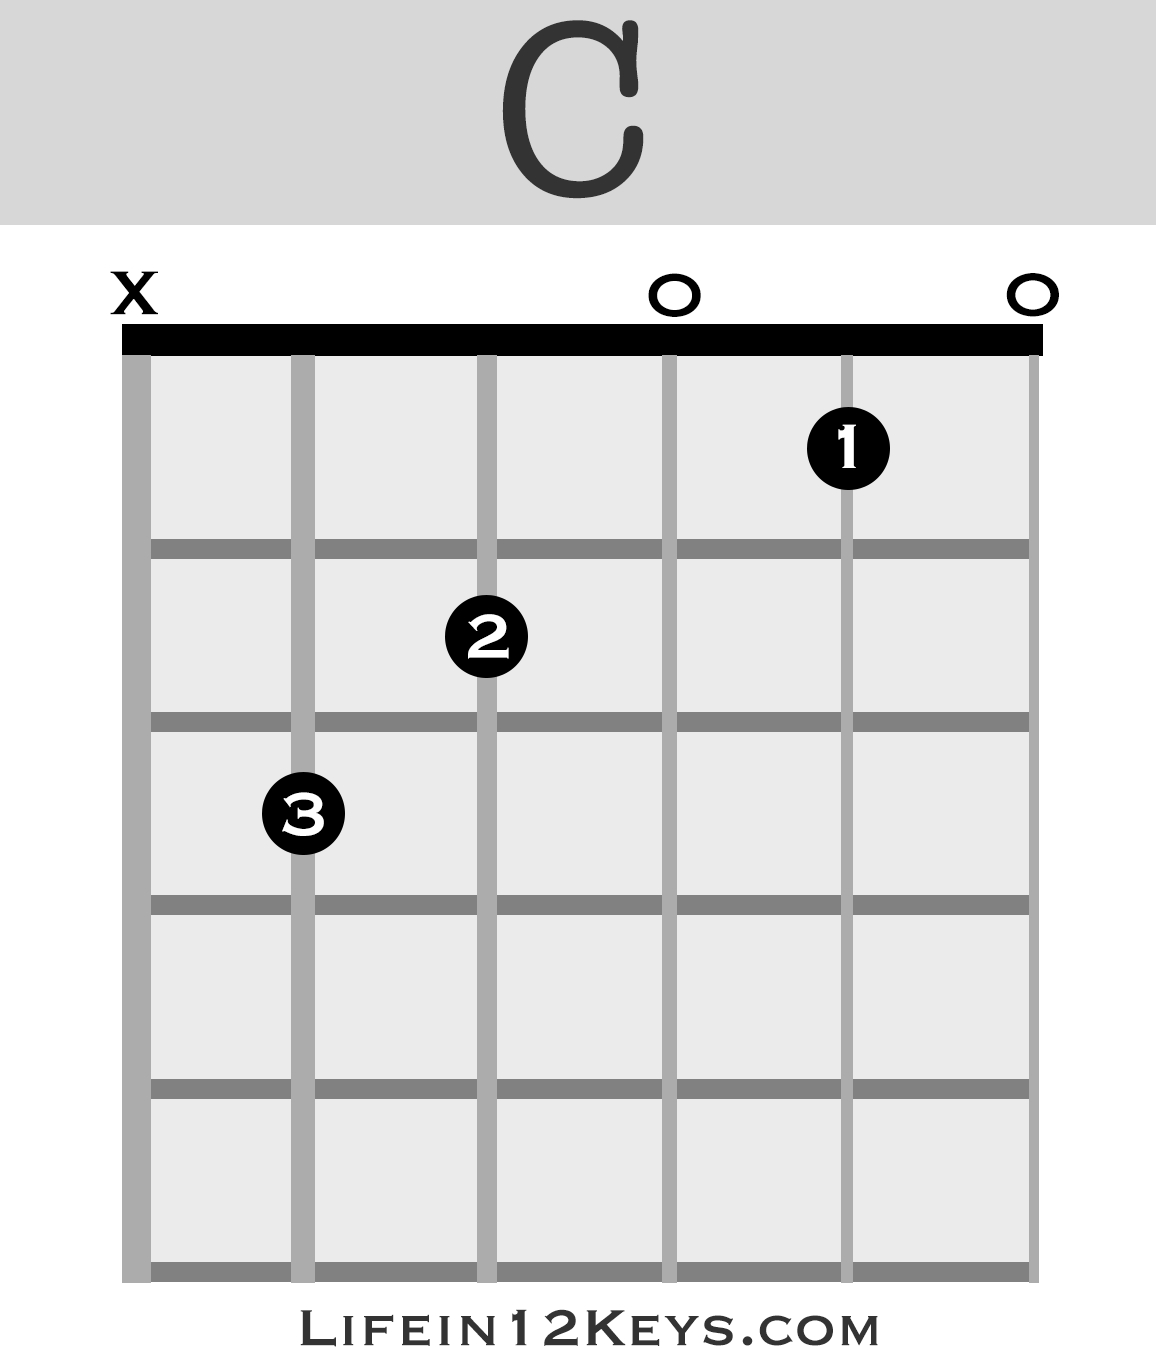 First Day Of My Life Chords 20 Essential Guitar Chords For Beginners Life In 12 Keys